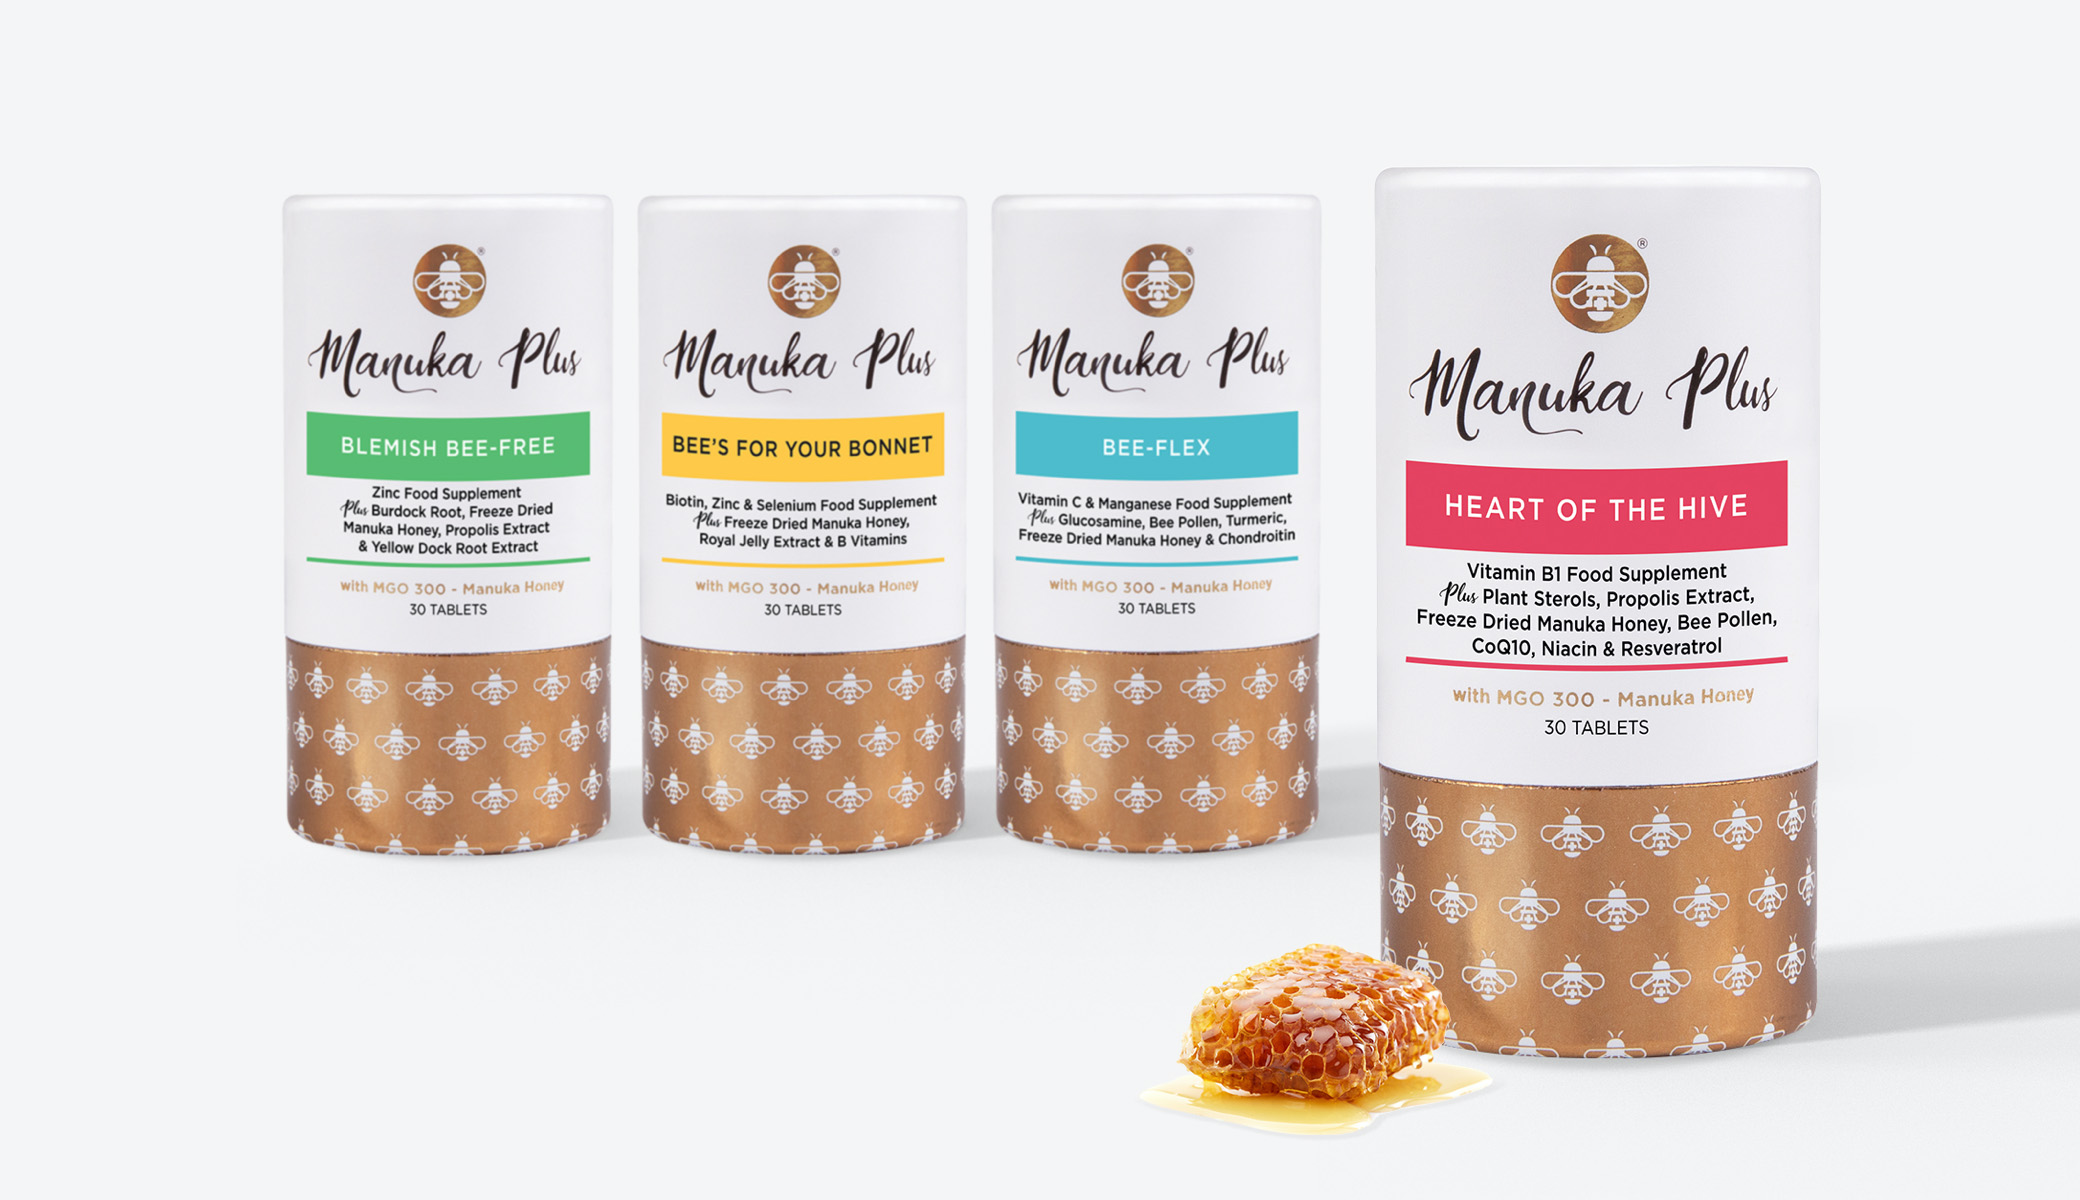 Manuka Plus packaging